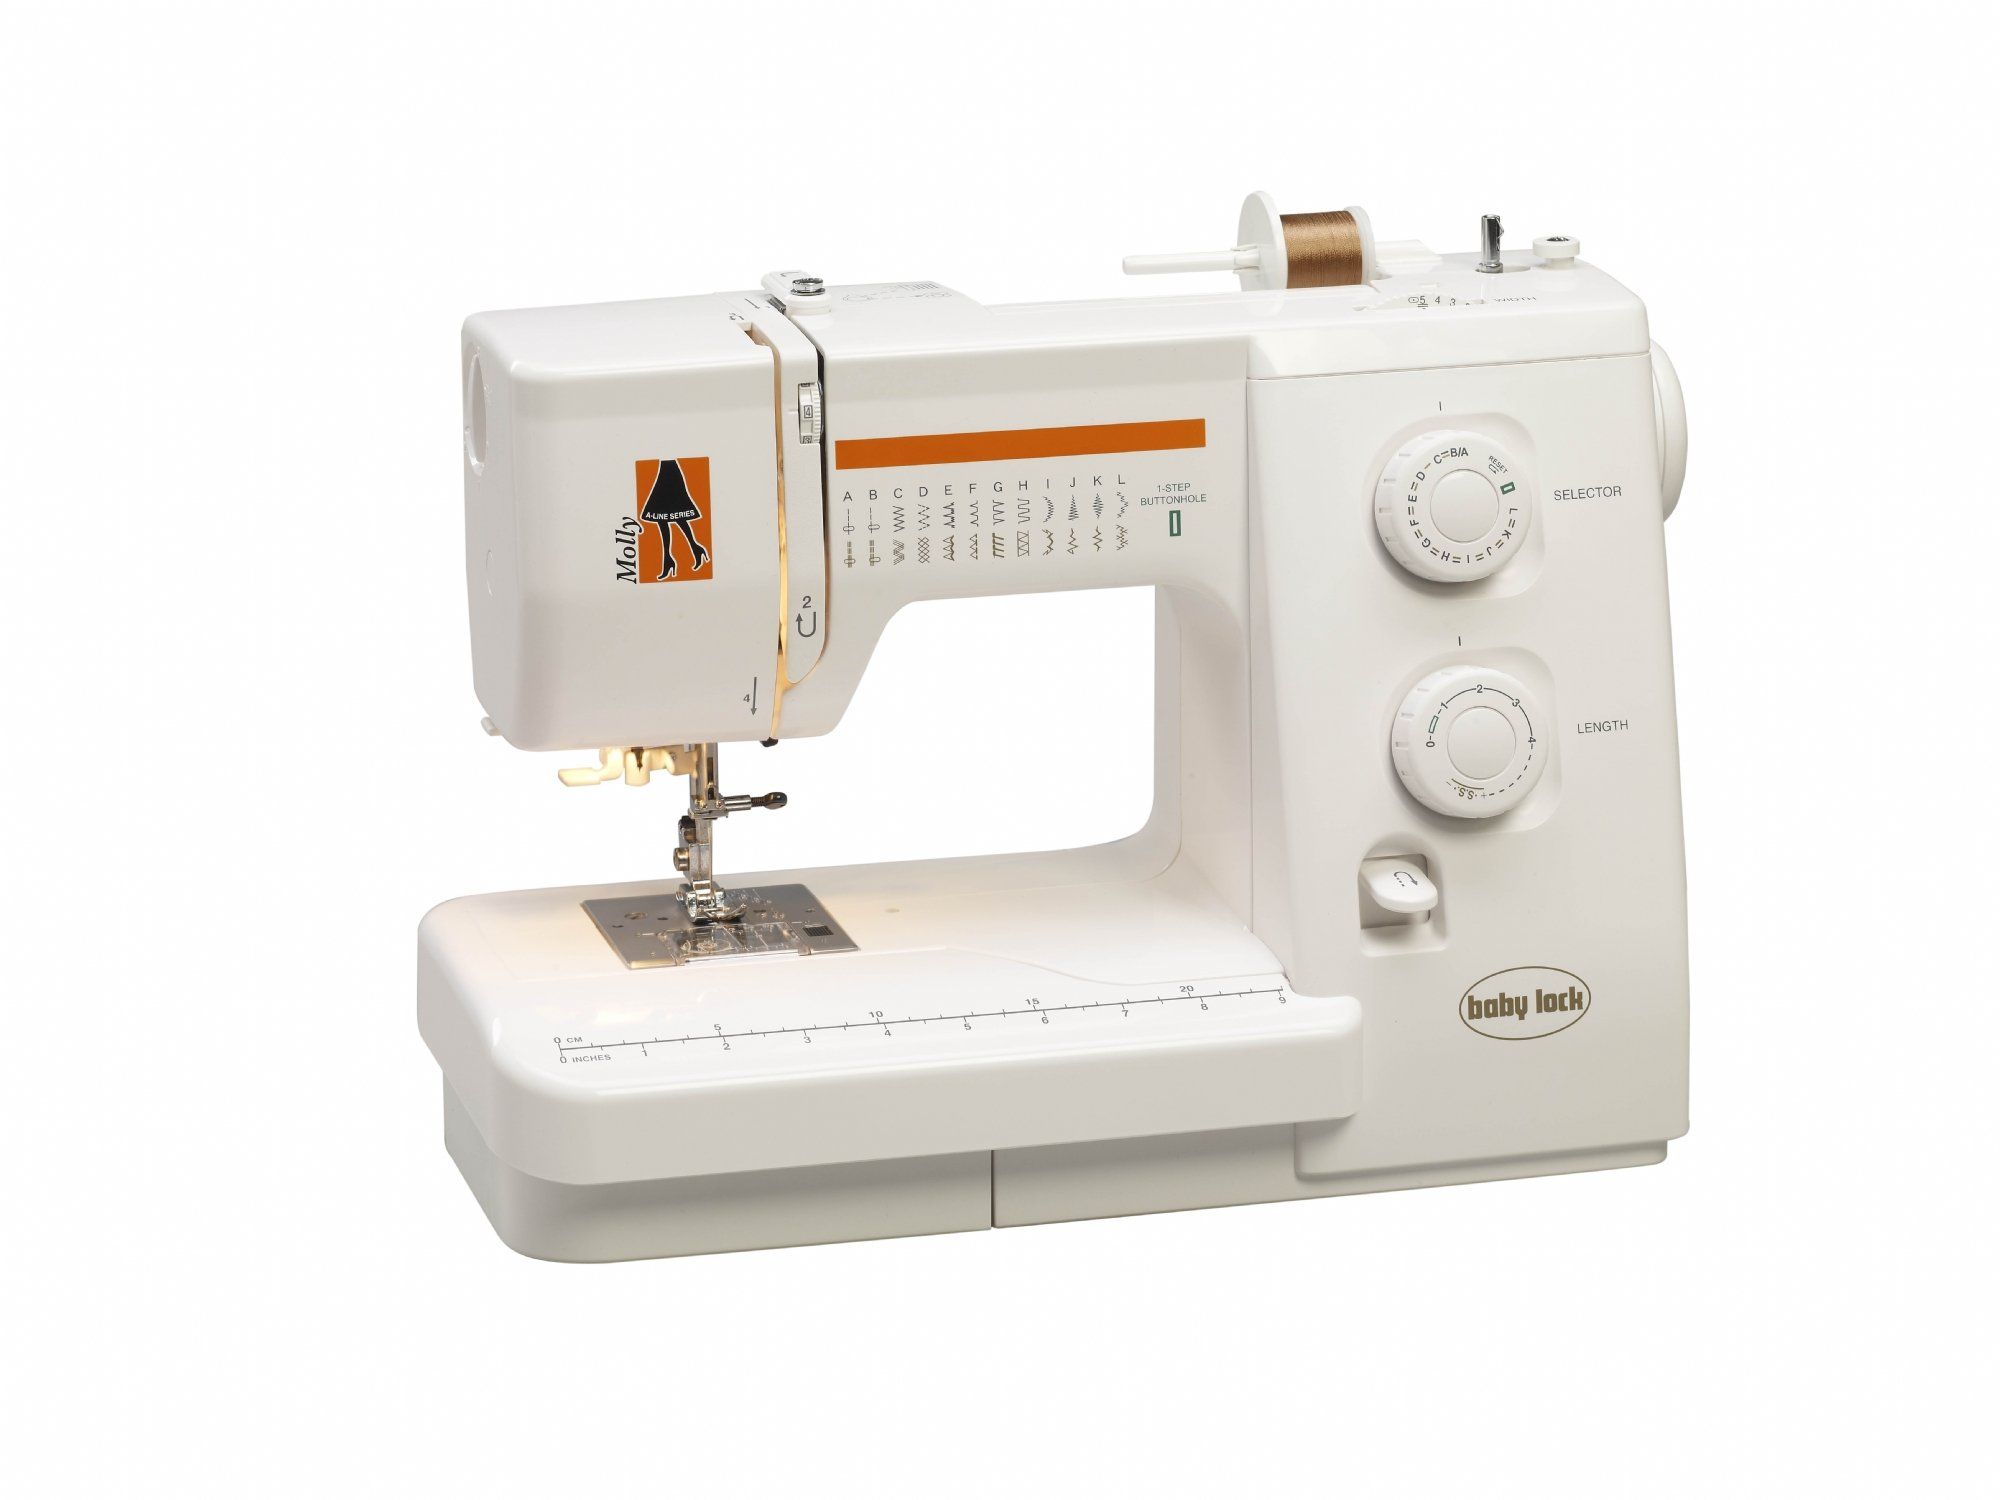 babylock sewing machine review